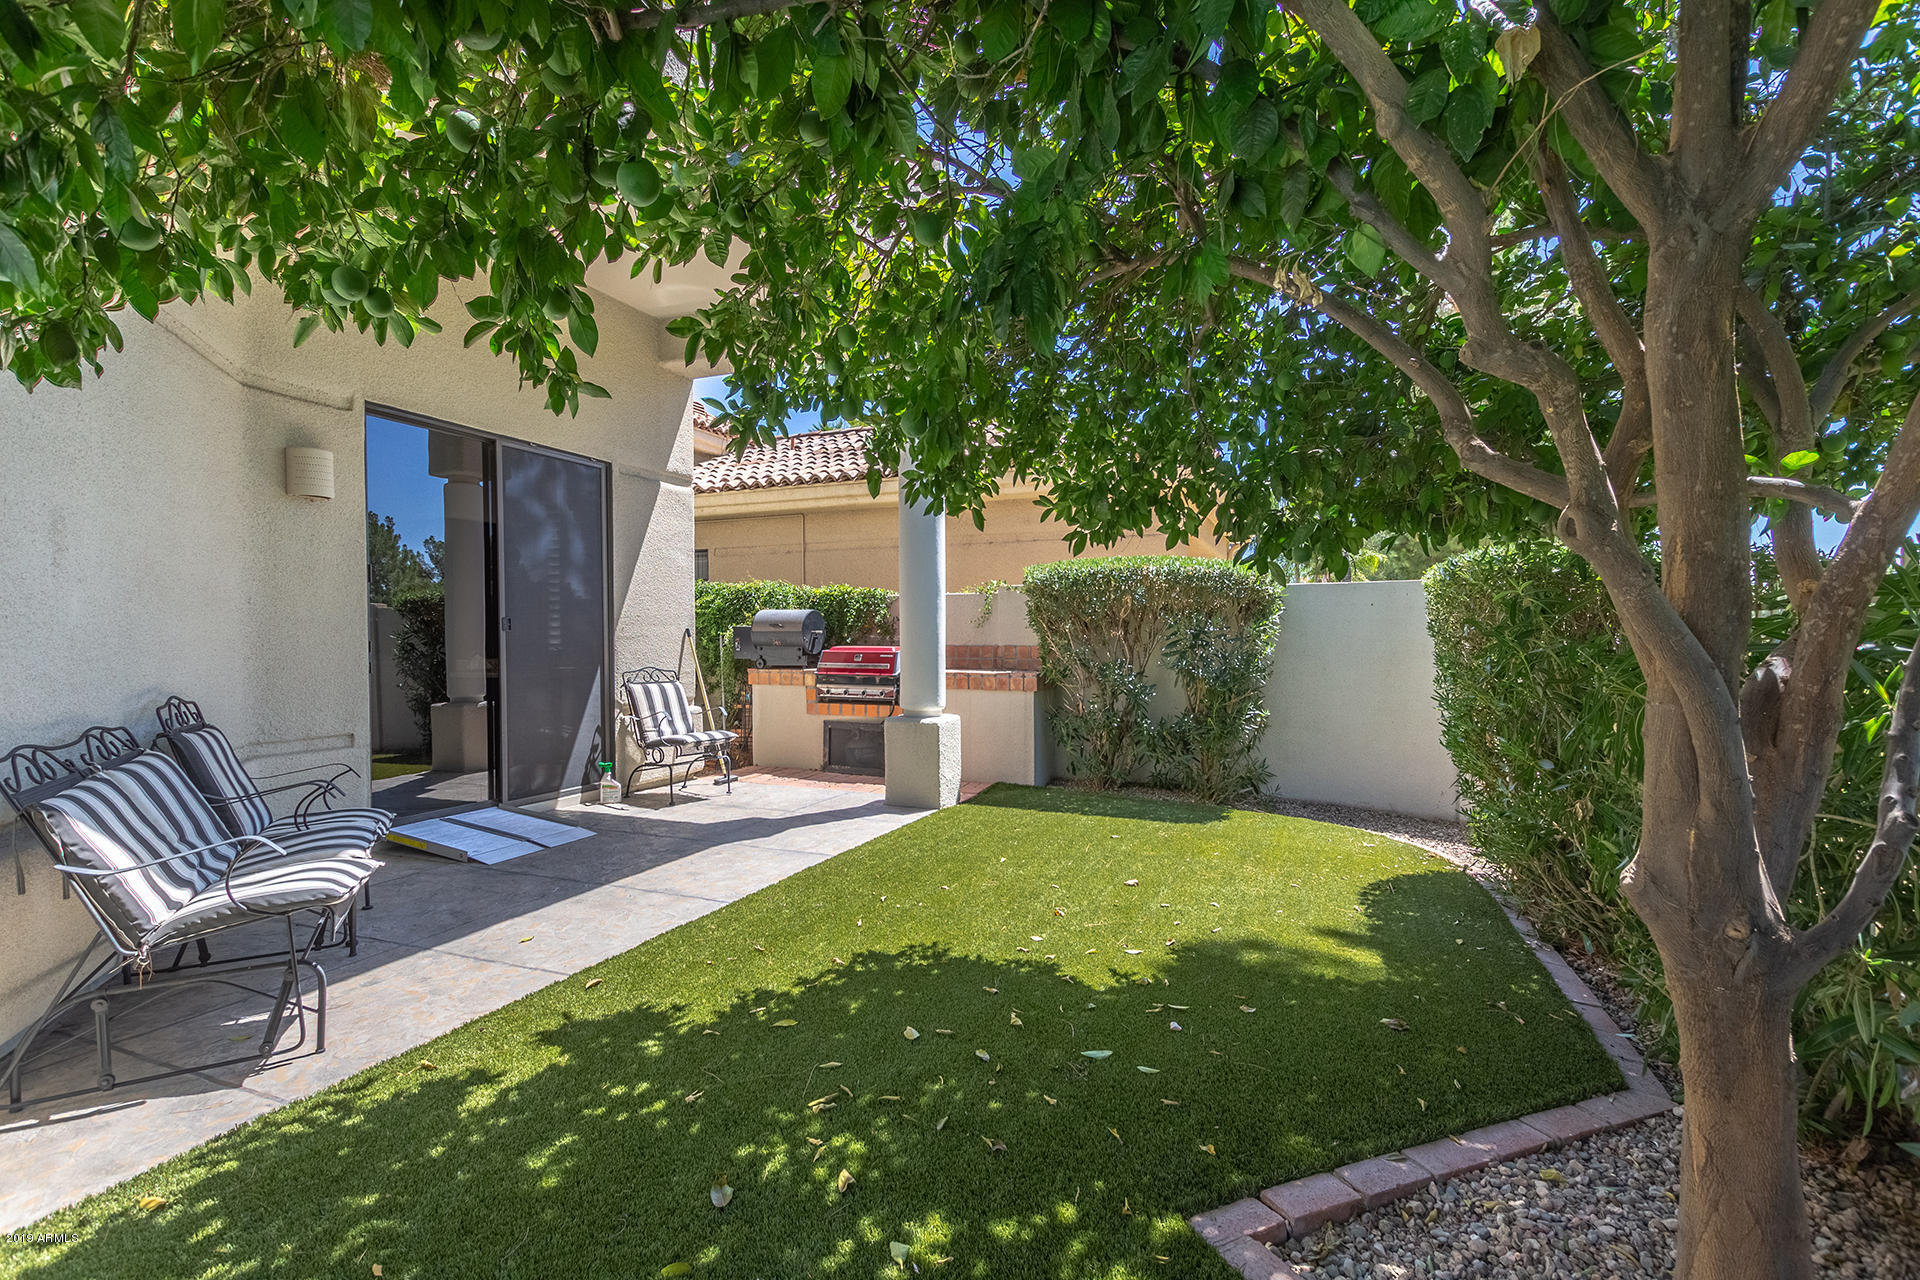 MLS 5971420 11858 N 80TH Place, Scottsdale, AZ 85260 Scottsdale AZ Scottsdale Country Club